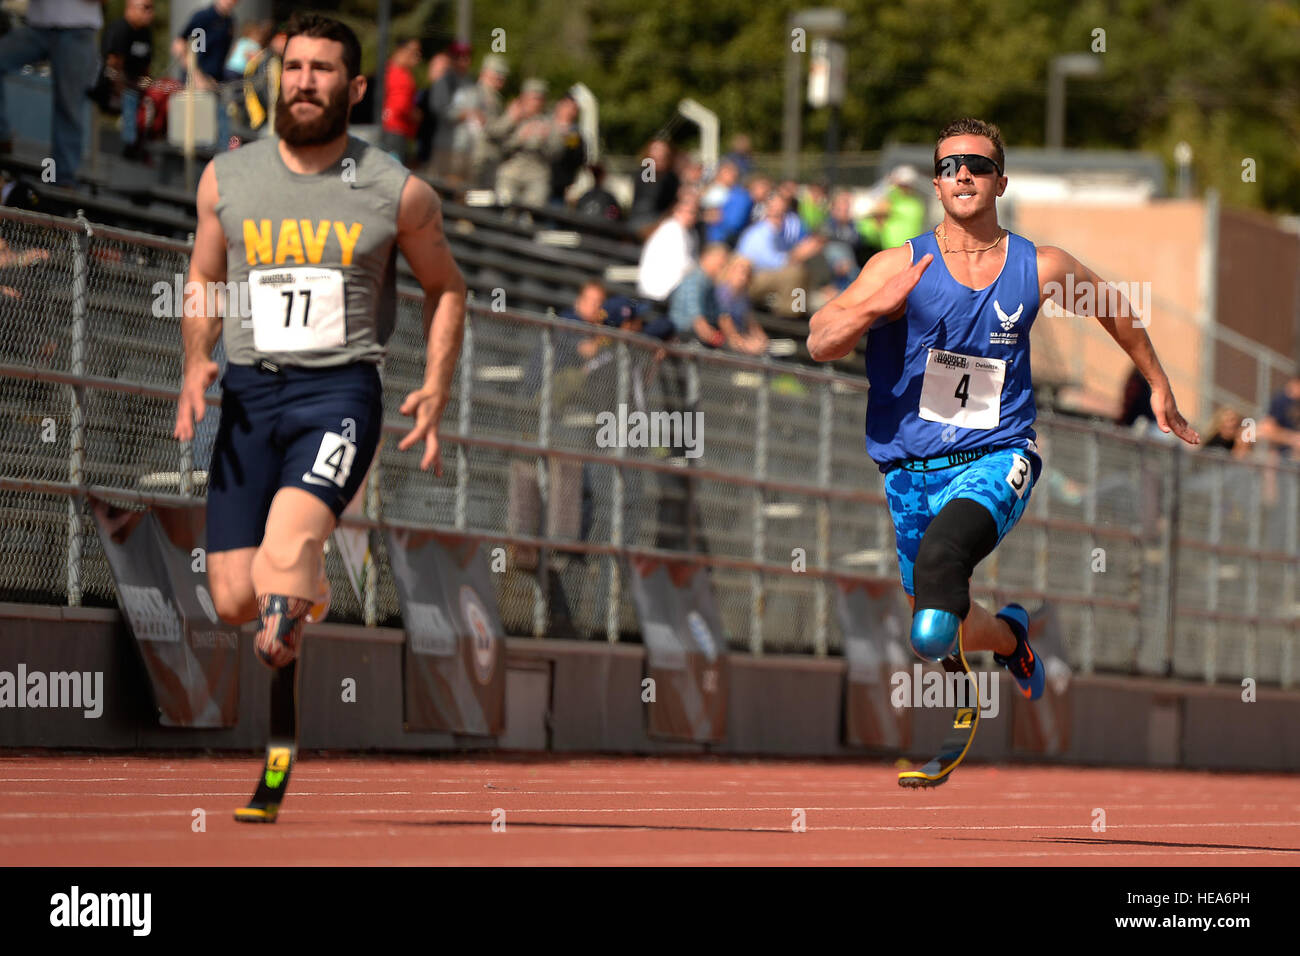 Air Force athlete Gideon Connelly (right) competes in track and field during the 2014 Warrior Games in Colorado - Stock Image